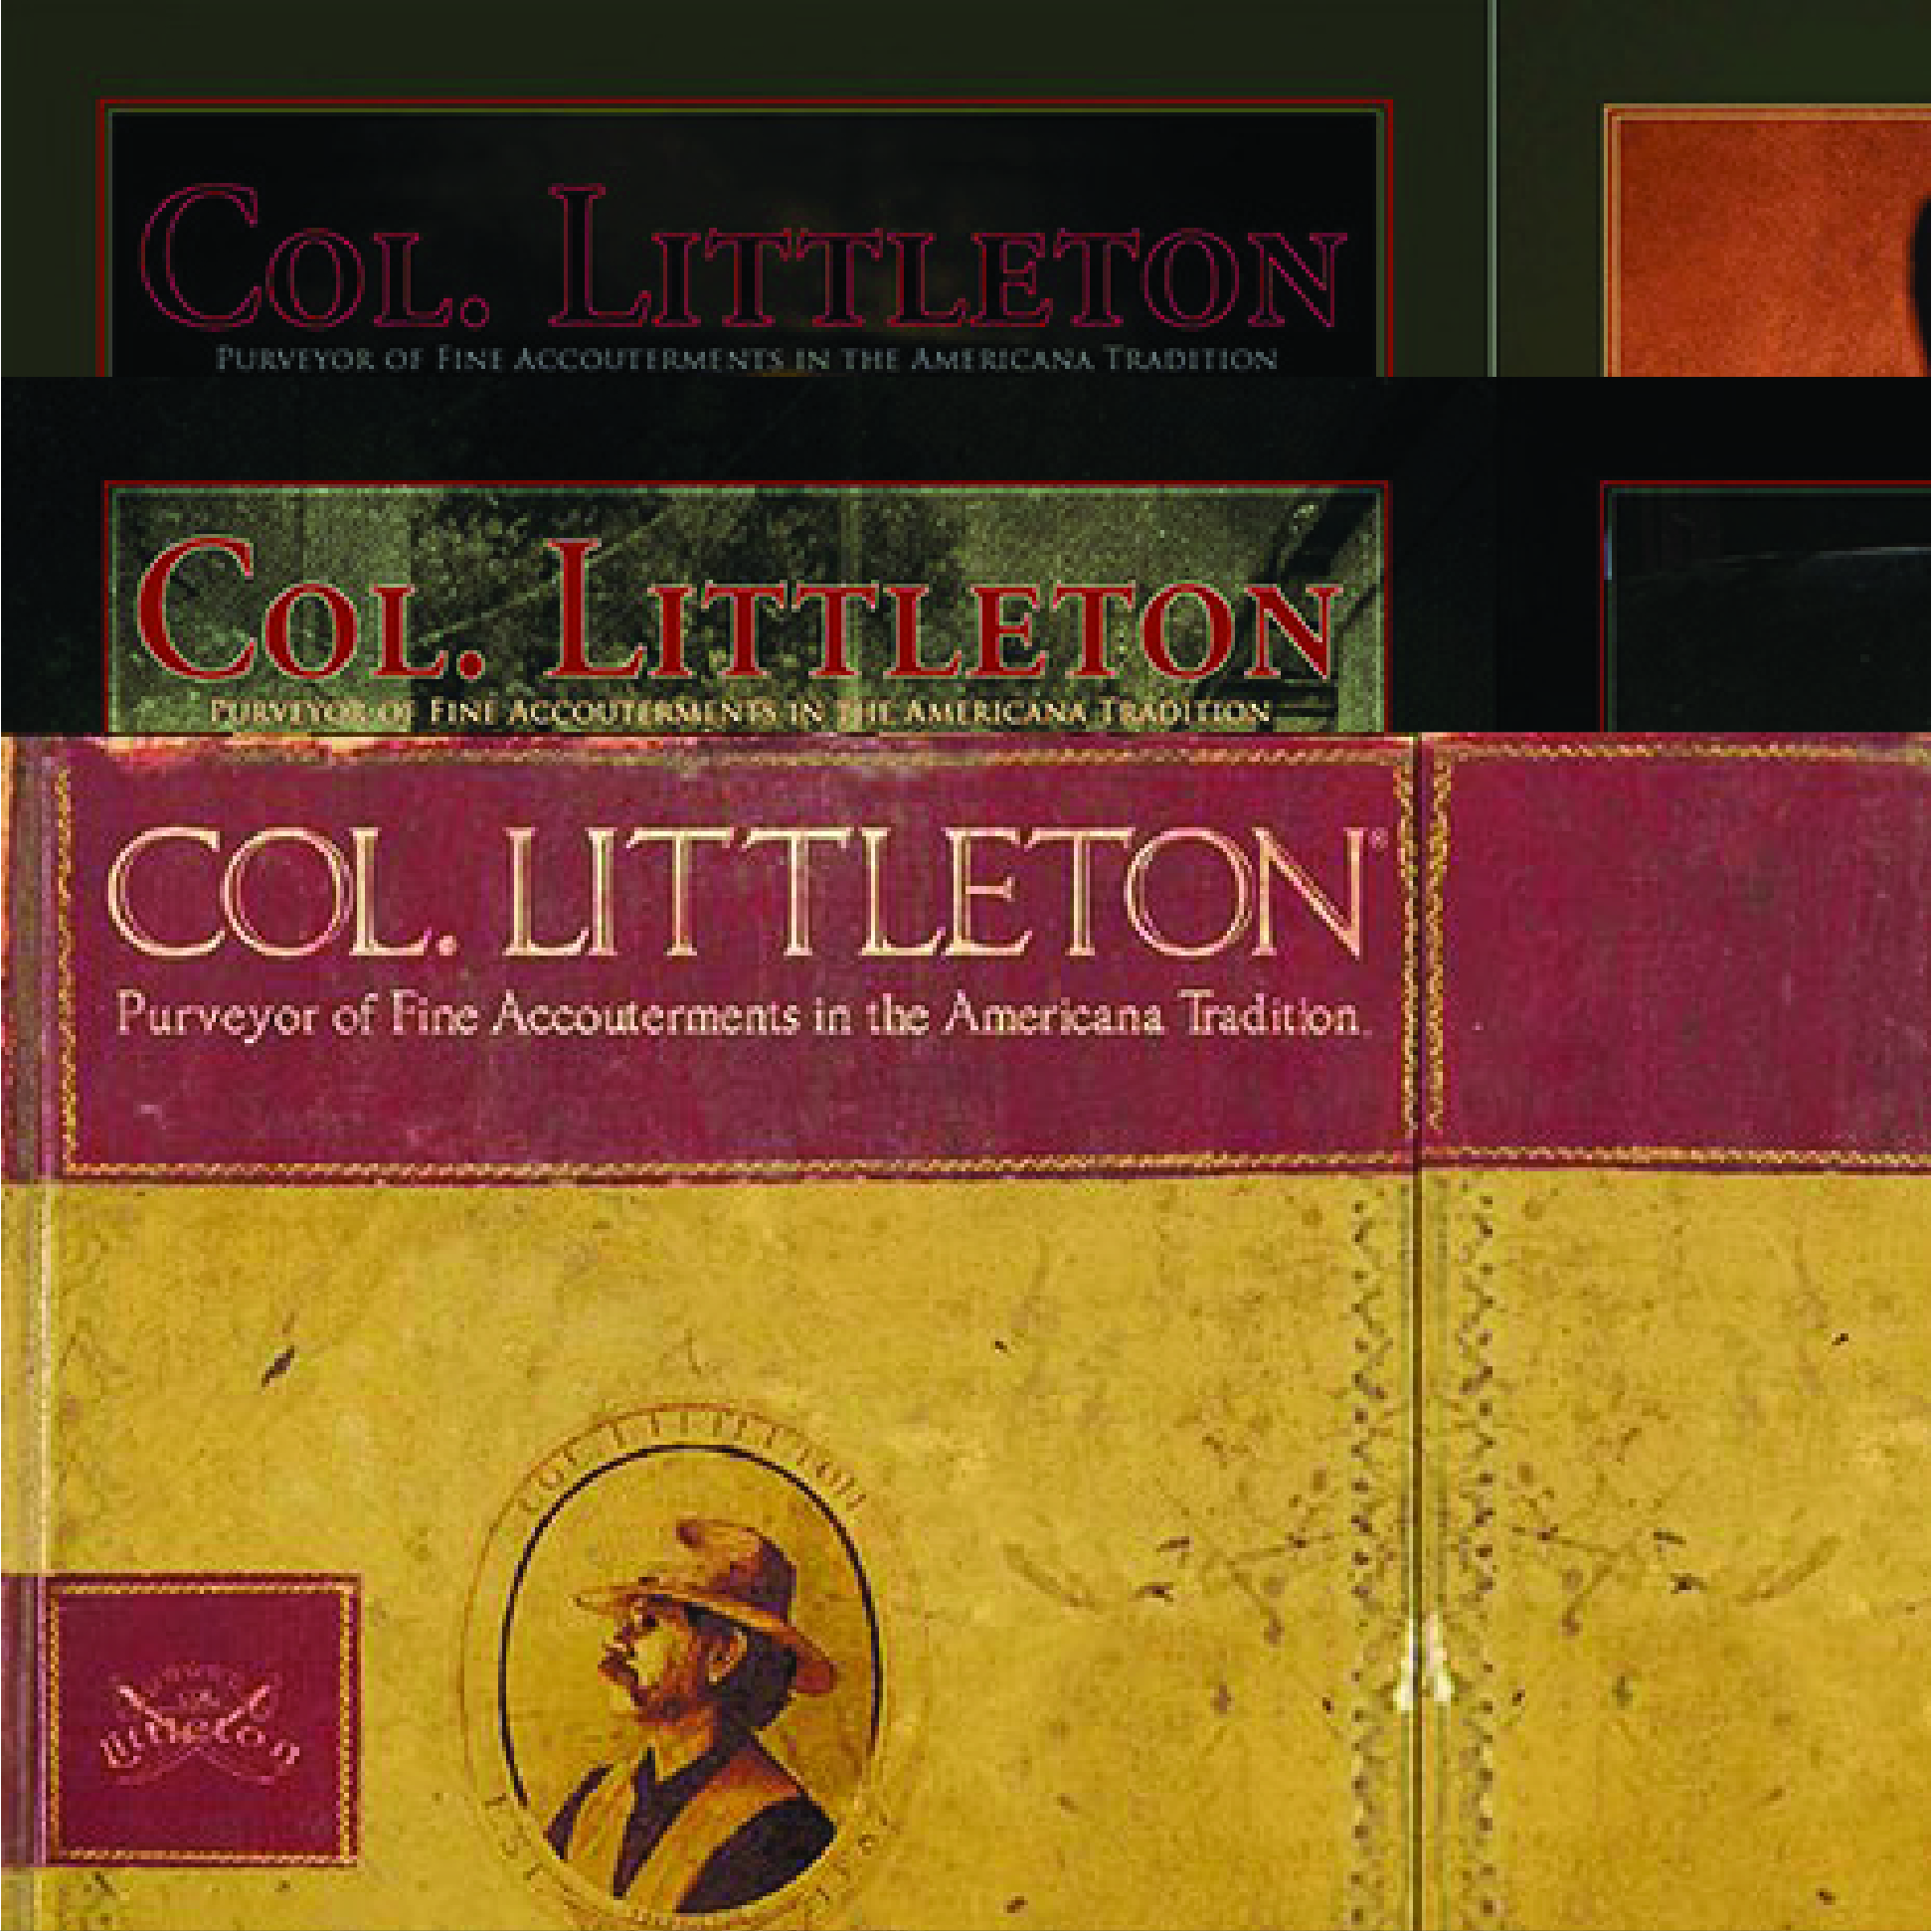 2011-2013 Col. Littleton Catalog Covers